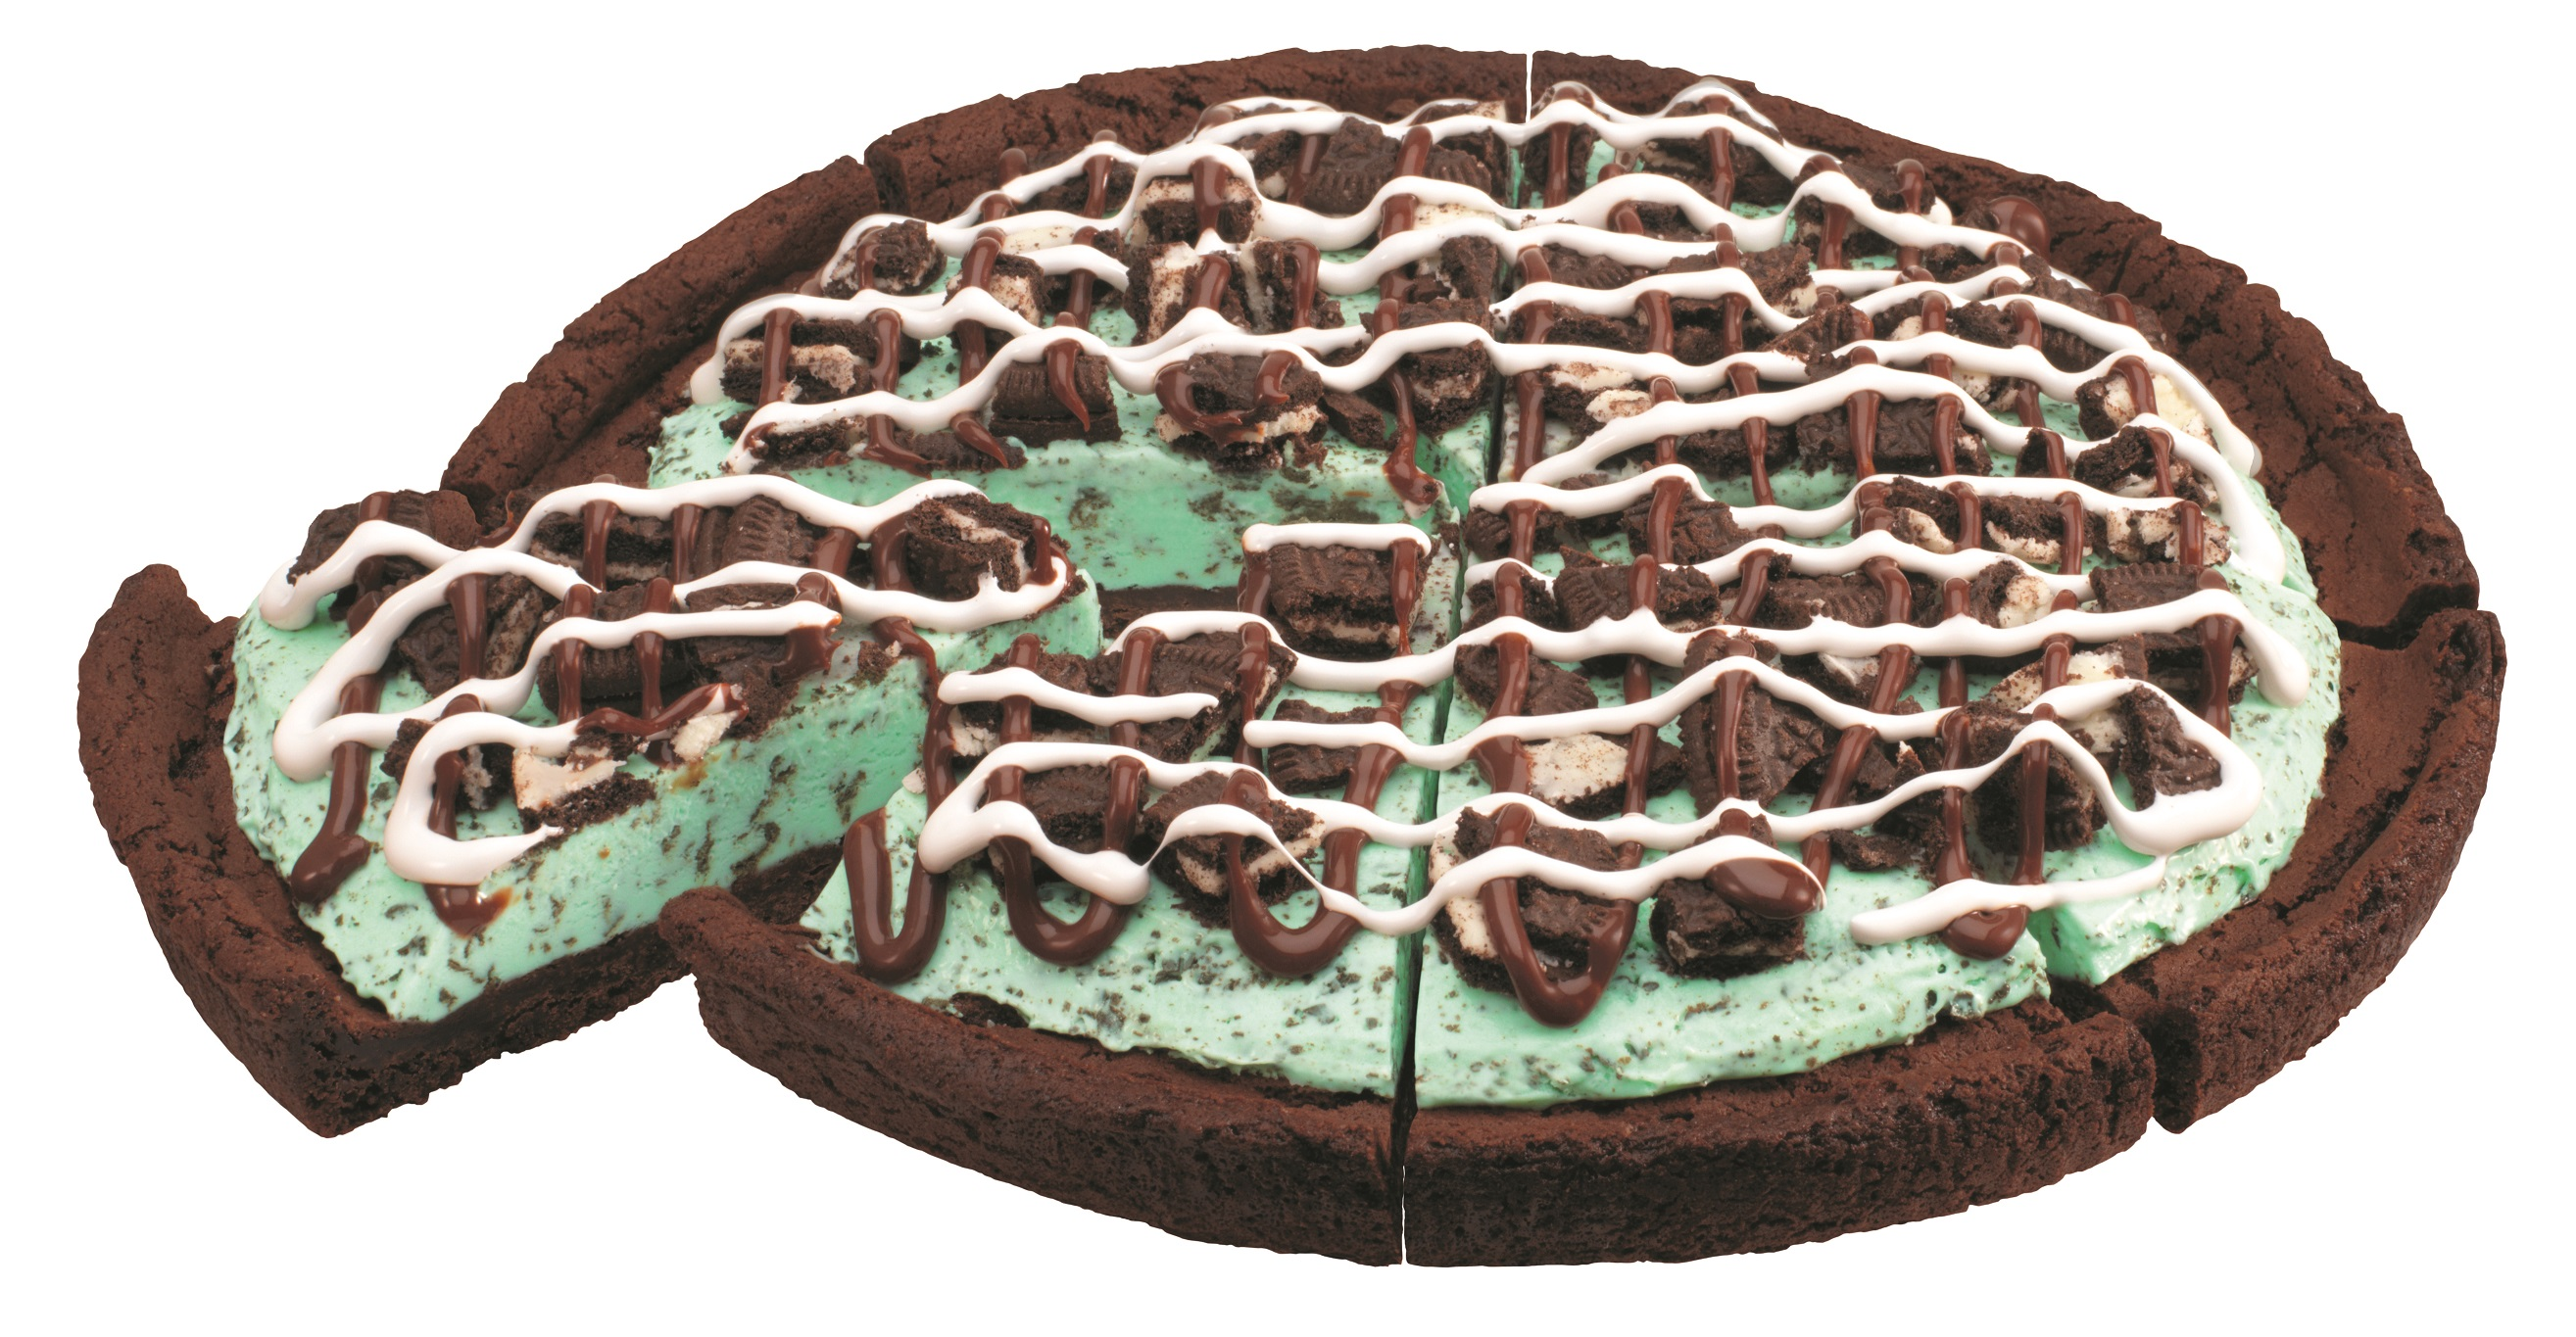 Baskin-Robbins to Offer Free Polar Pizza® Samples on July 14 to ...